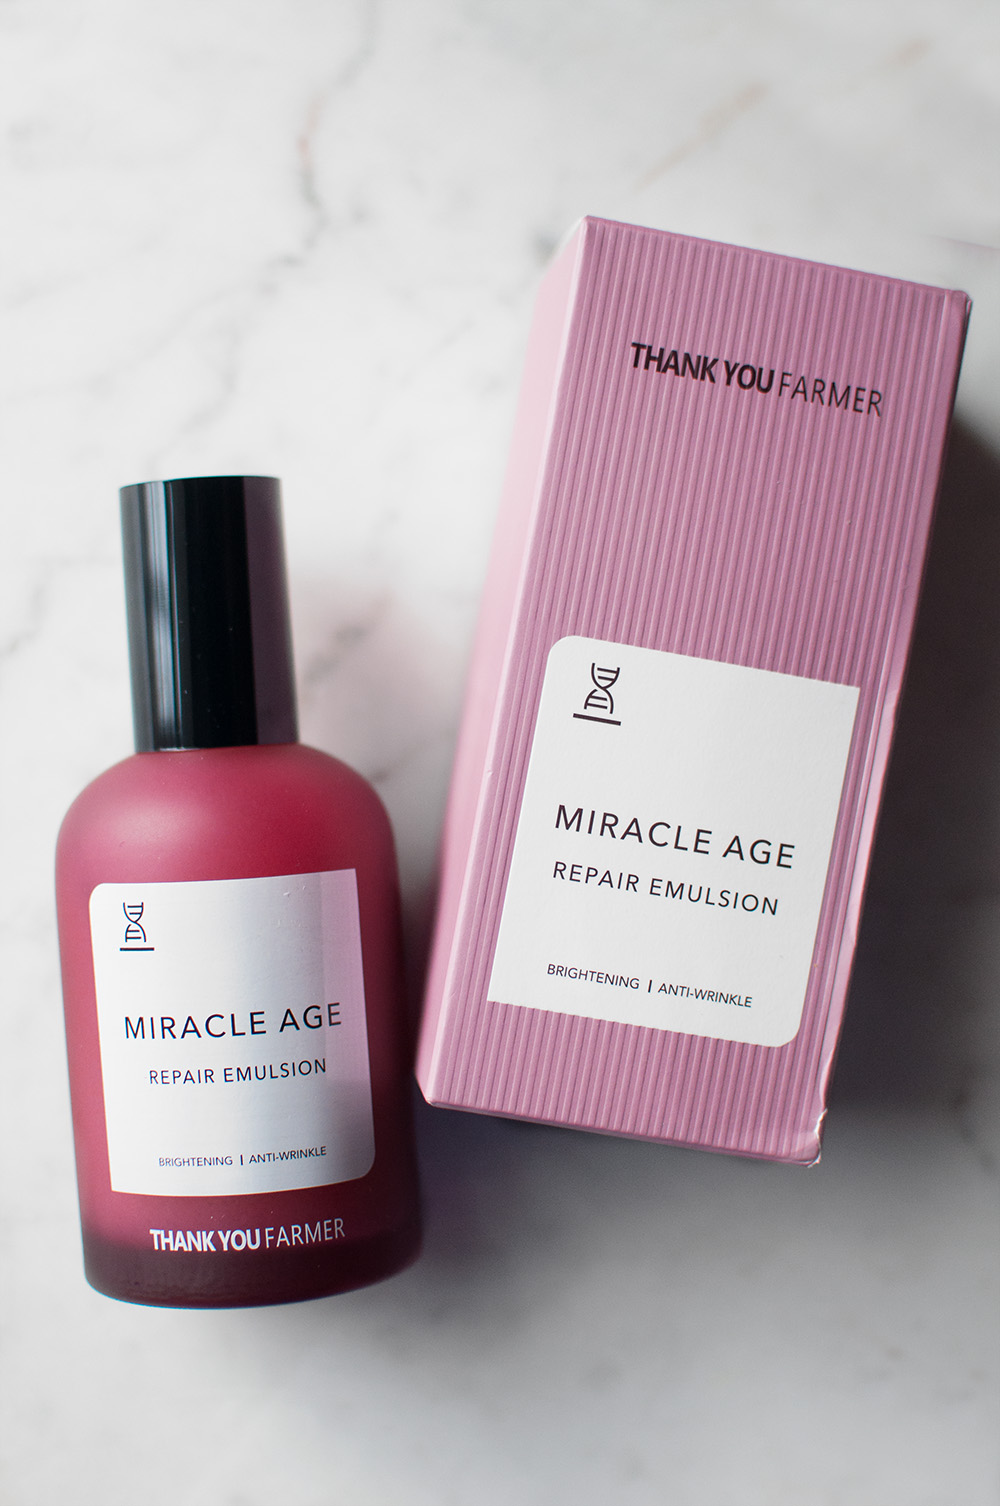 thank you farmer, thank you farmer miracle age repair emulsion, thank you farmer skincare, korean skincare